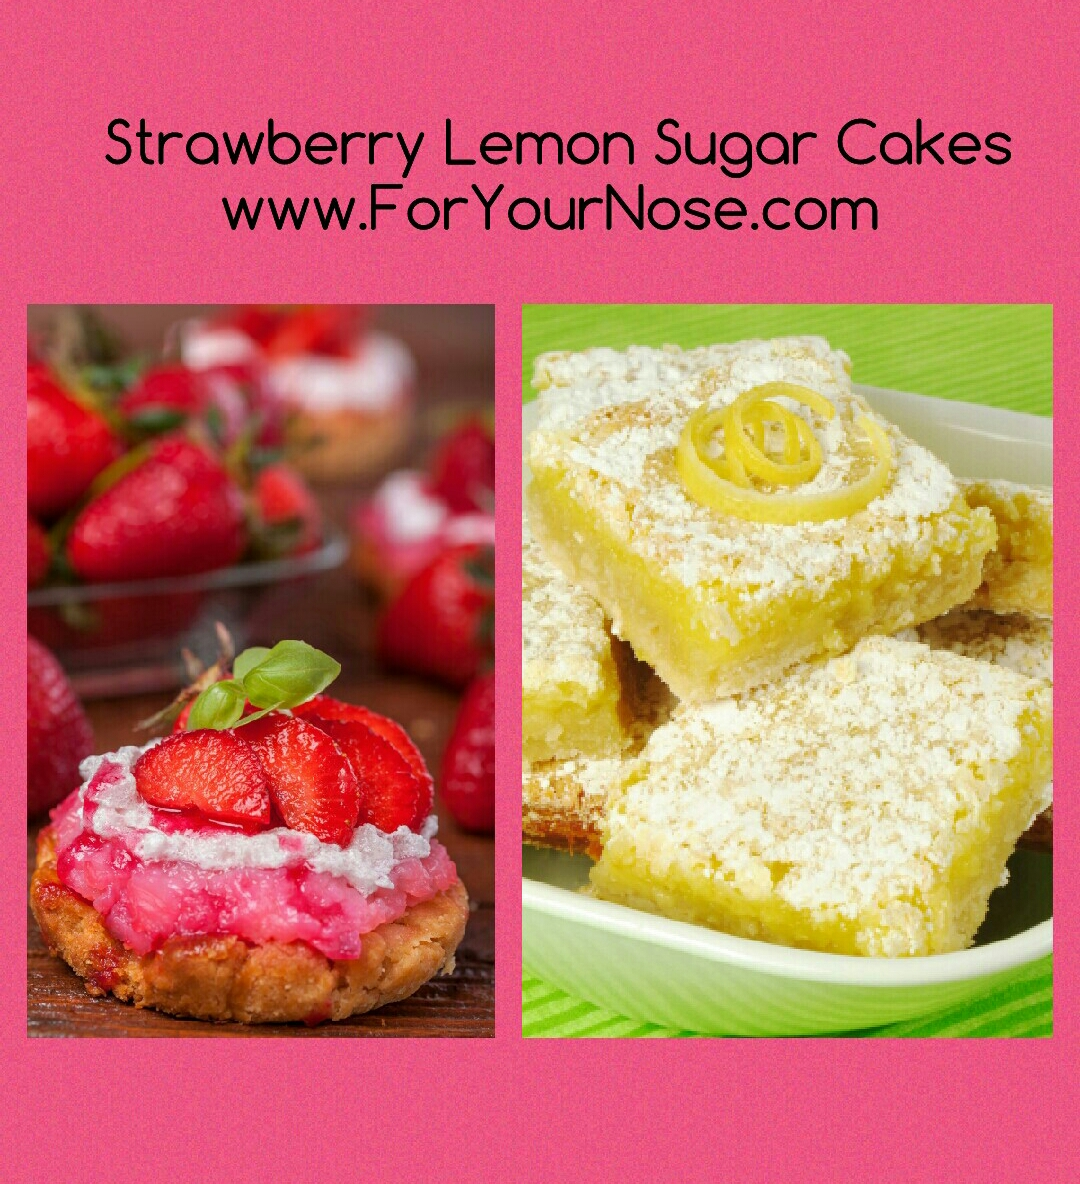 strawberry lemon sugar cakes